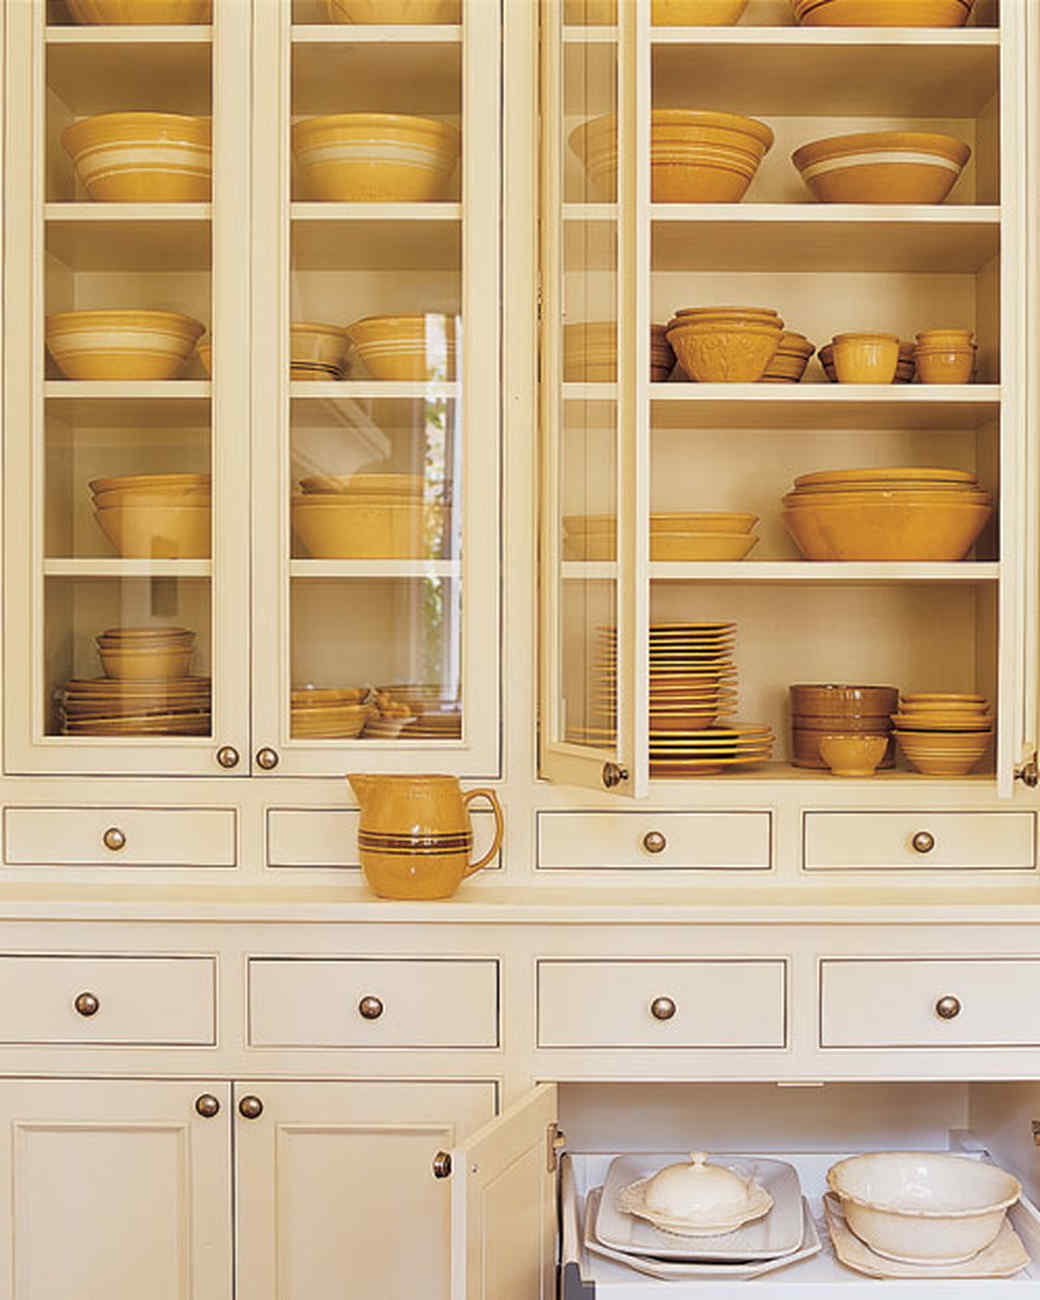 Organized kitchens for Arranging dishes in kitchen cabinets